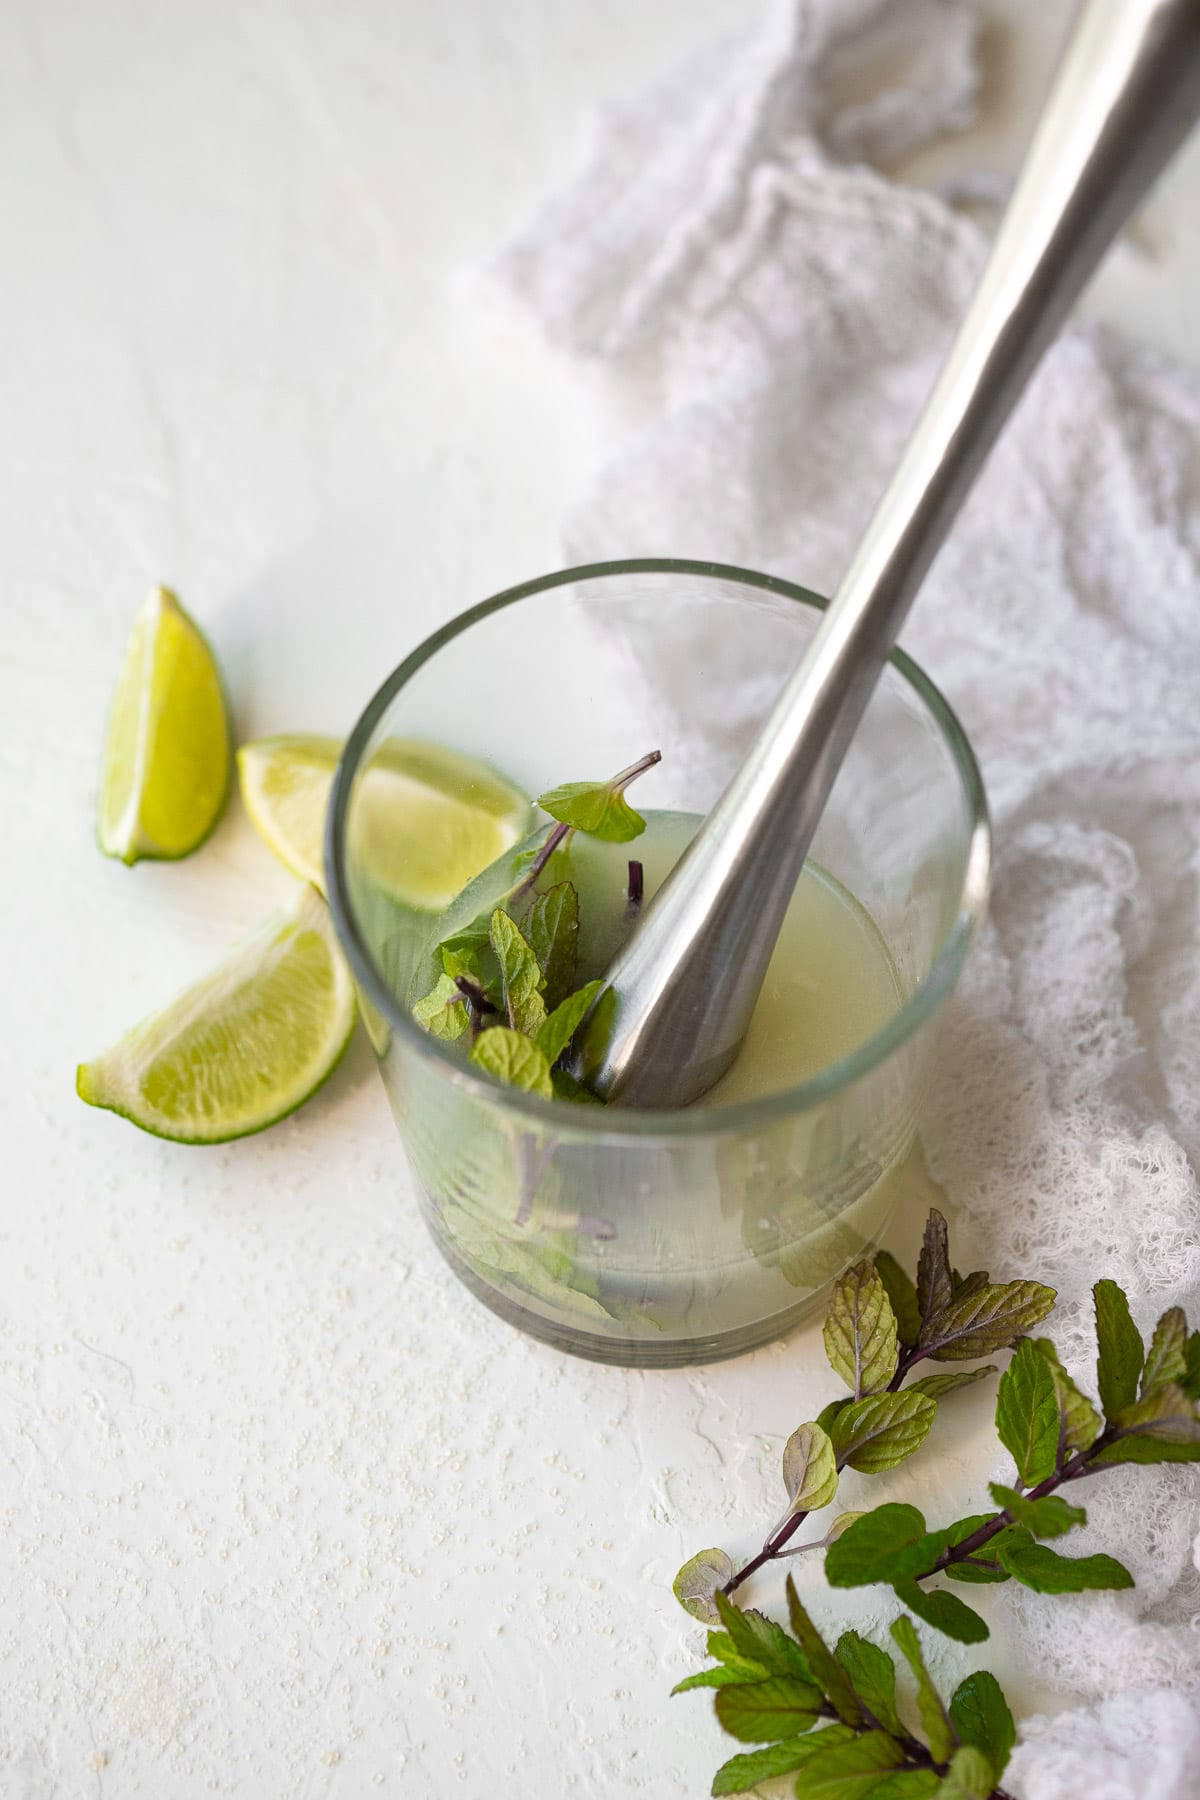 Mint and lime juice combined in a small glass, ready to be muddled.